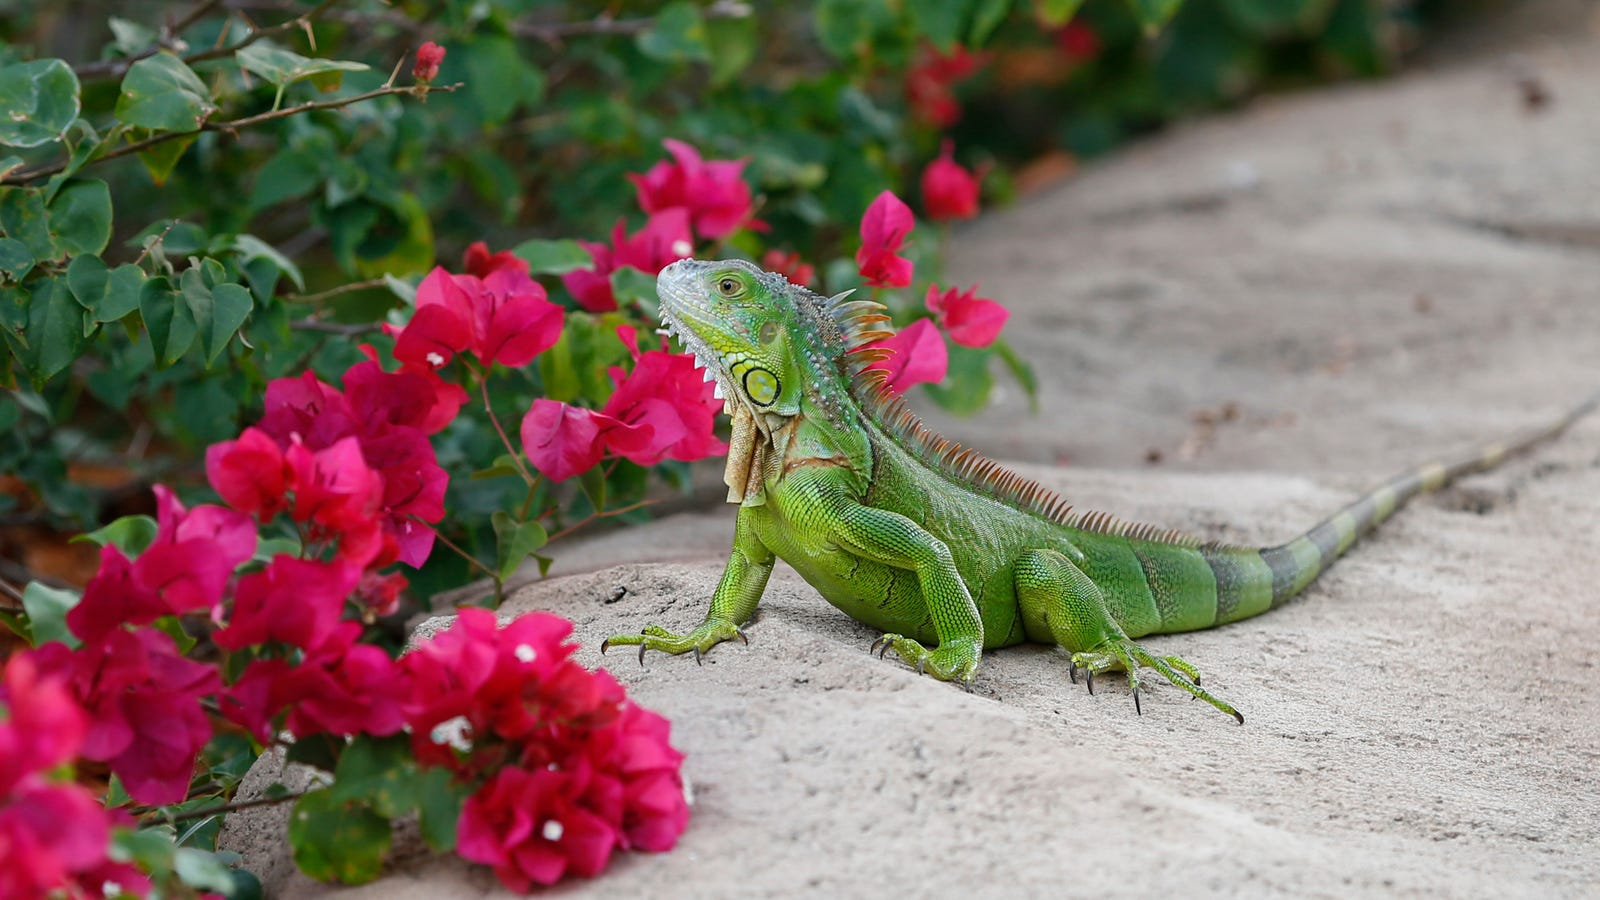 Homeowners in Florida Encouraged to Kill Invasive Iguanas 'Whenever Possible'